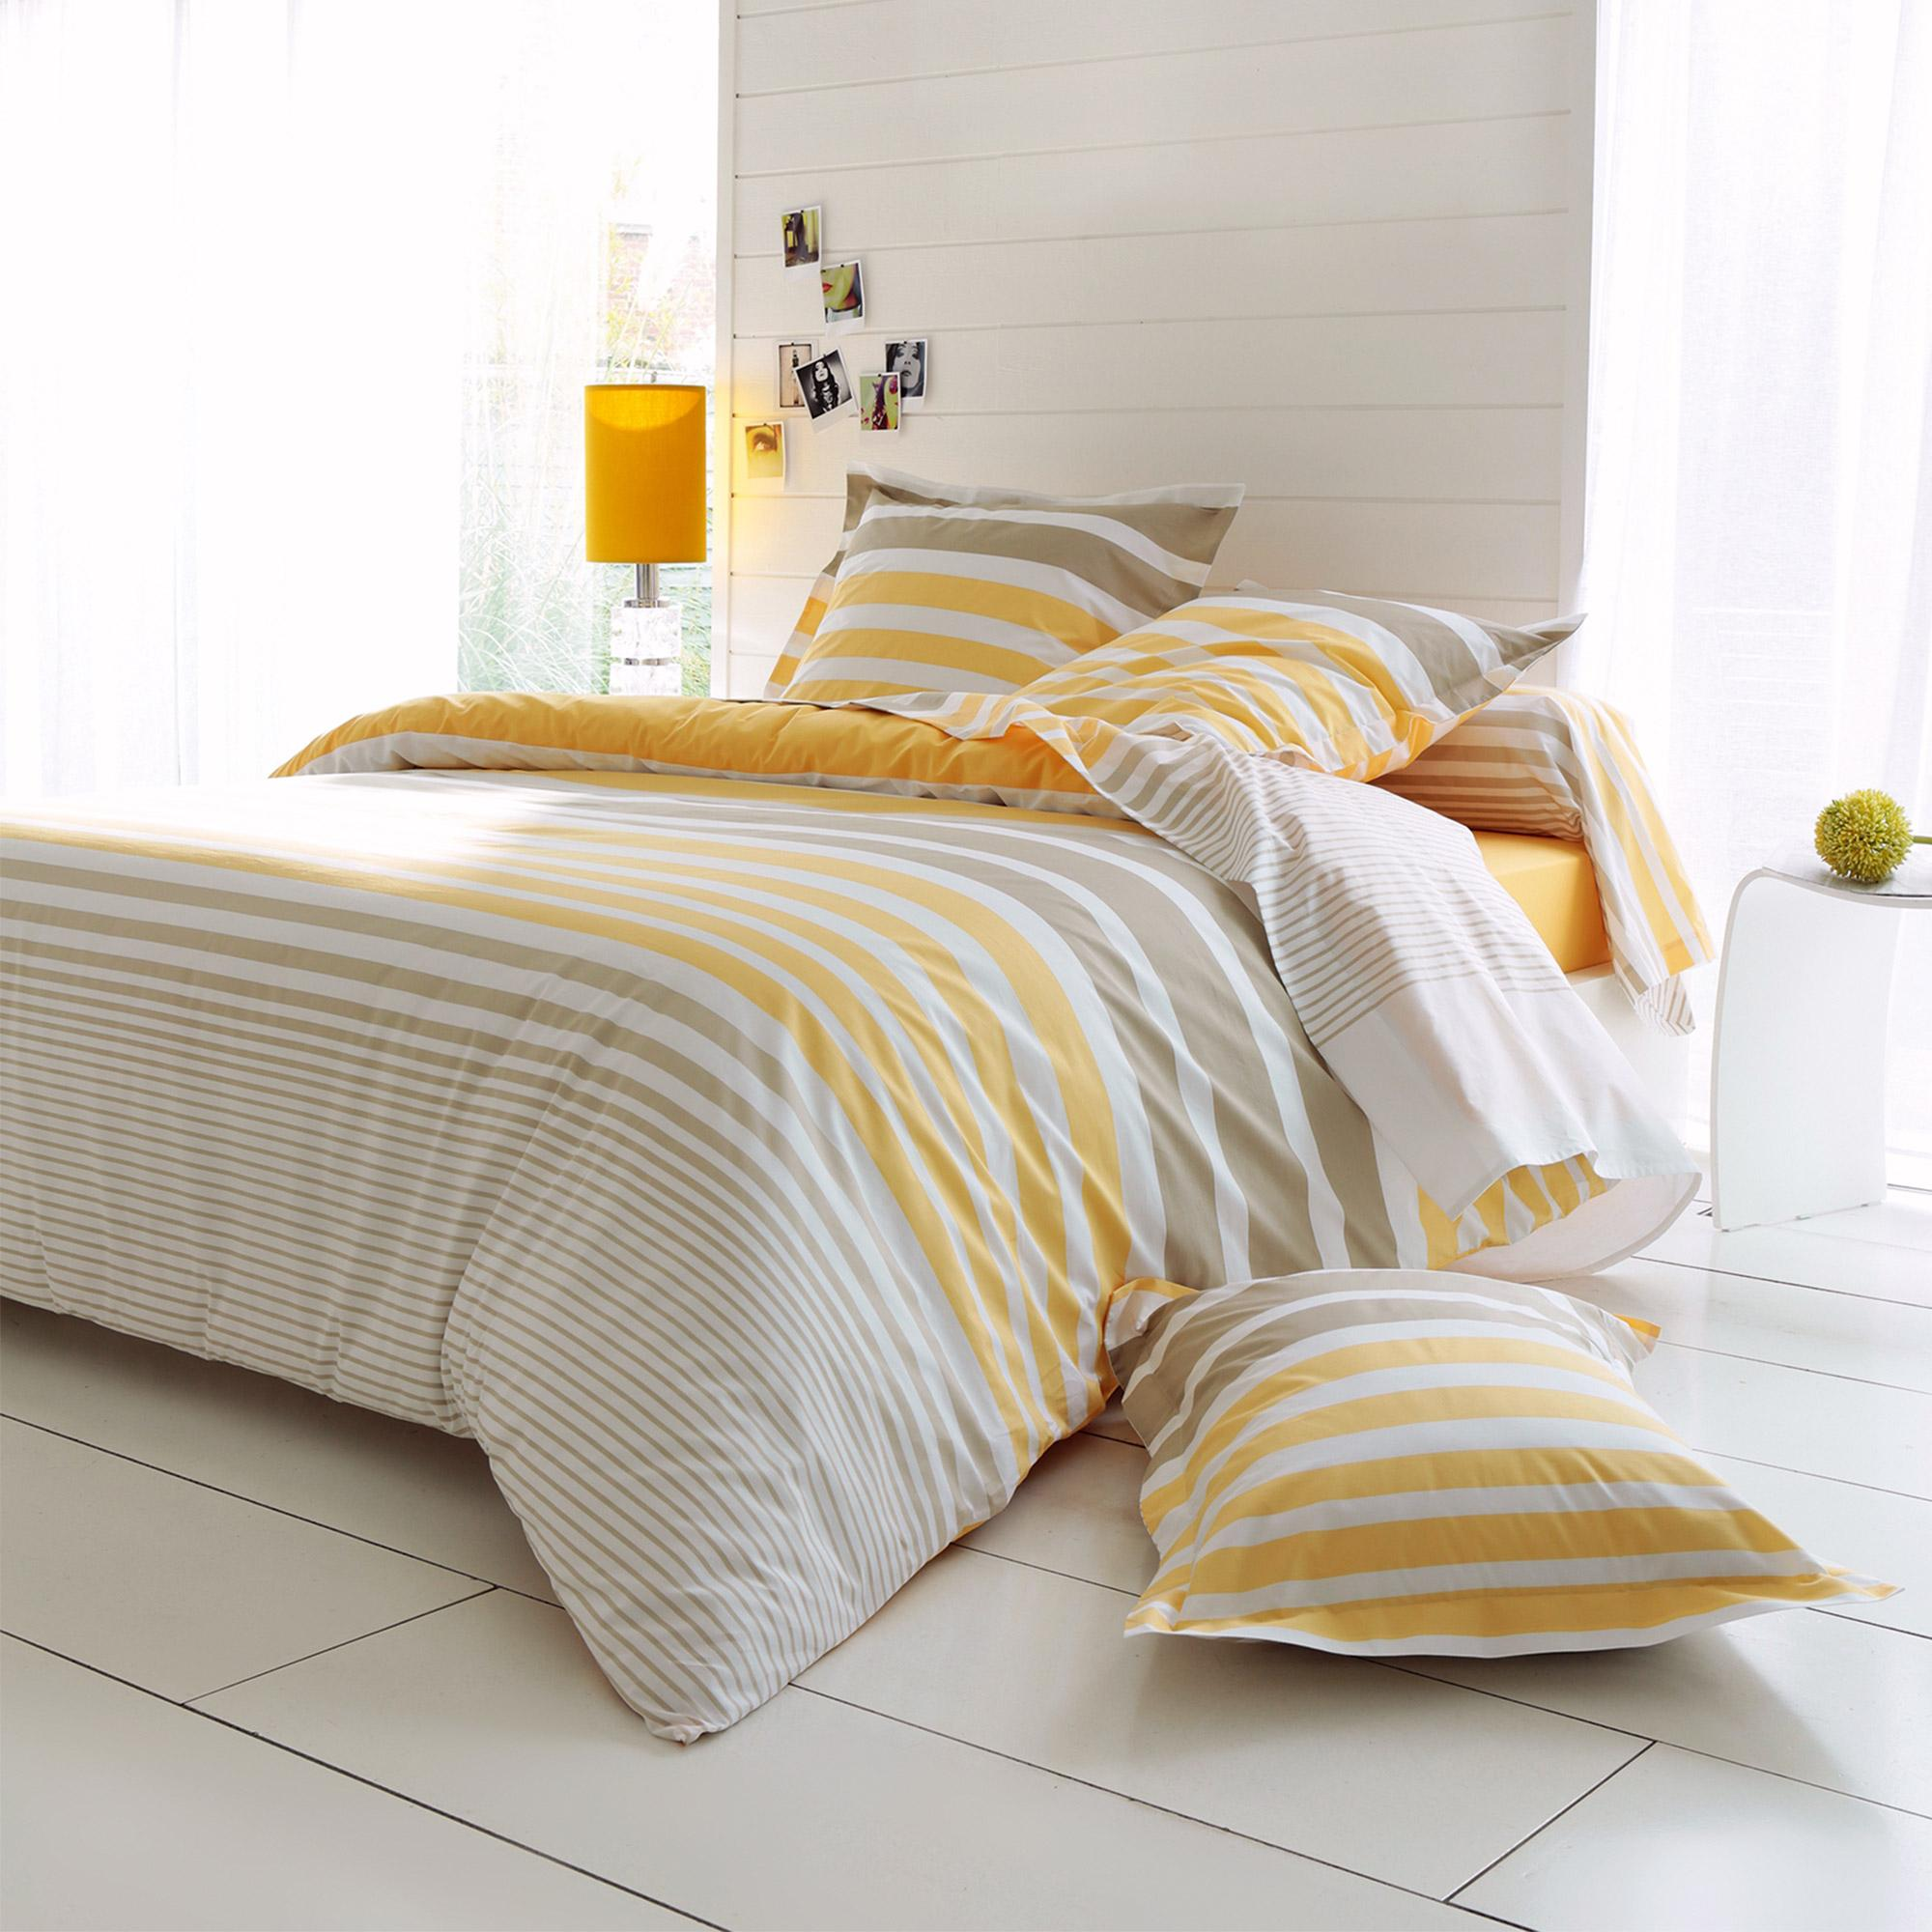 parure de lit 240x220 cm percale pur coton stripe narcisse jaune 3 pi ces linnea linge de. Black Bedroom Furniture Sets. Home Design Ideas